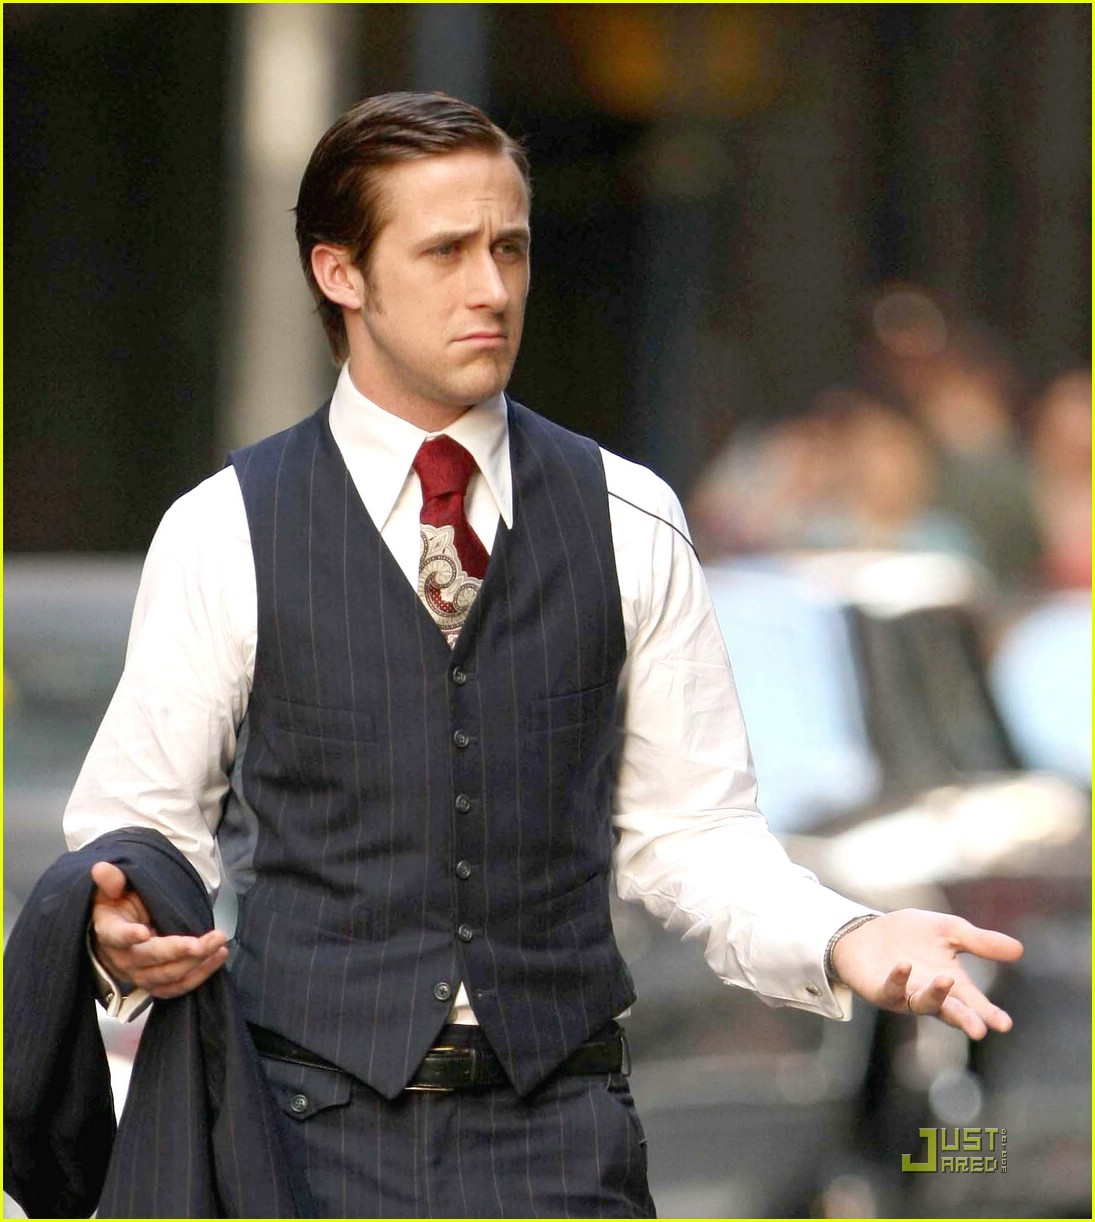 Ryan Gosling Suits Pos...